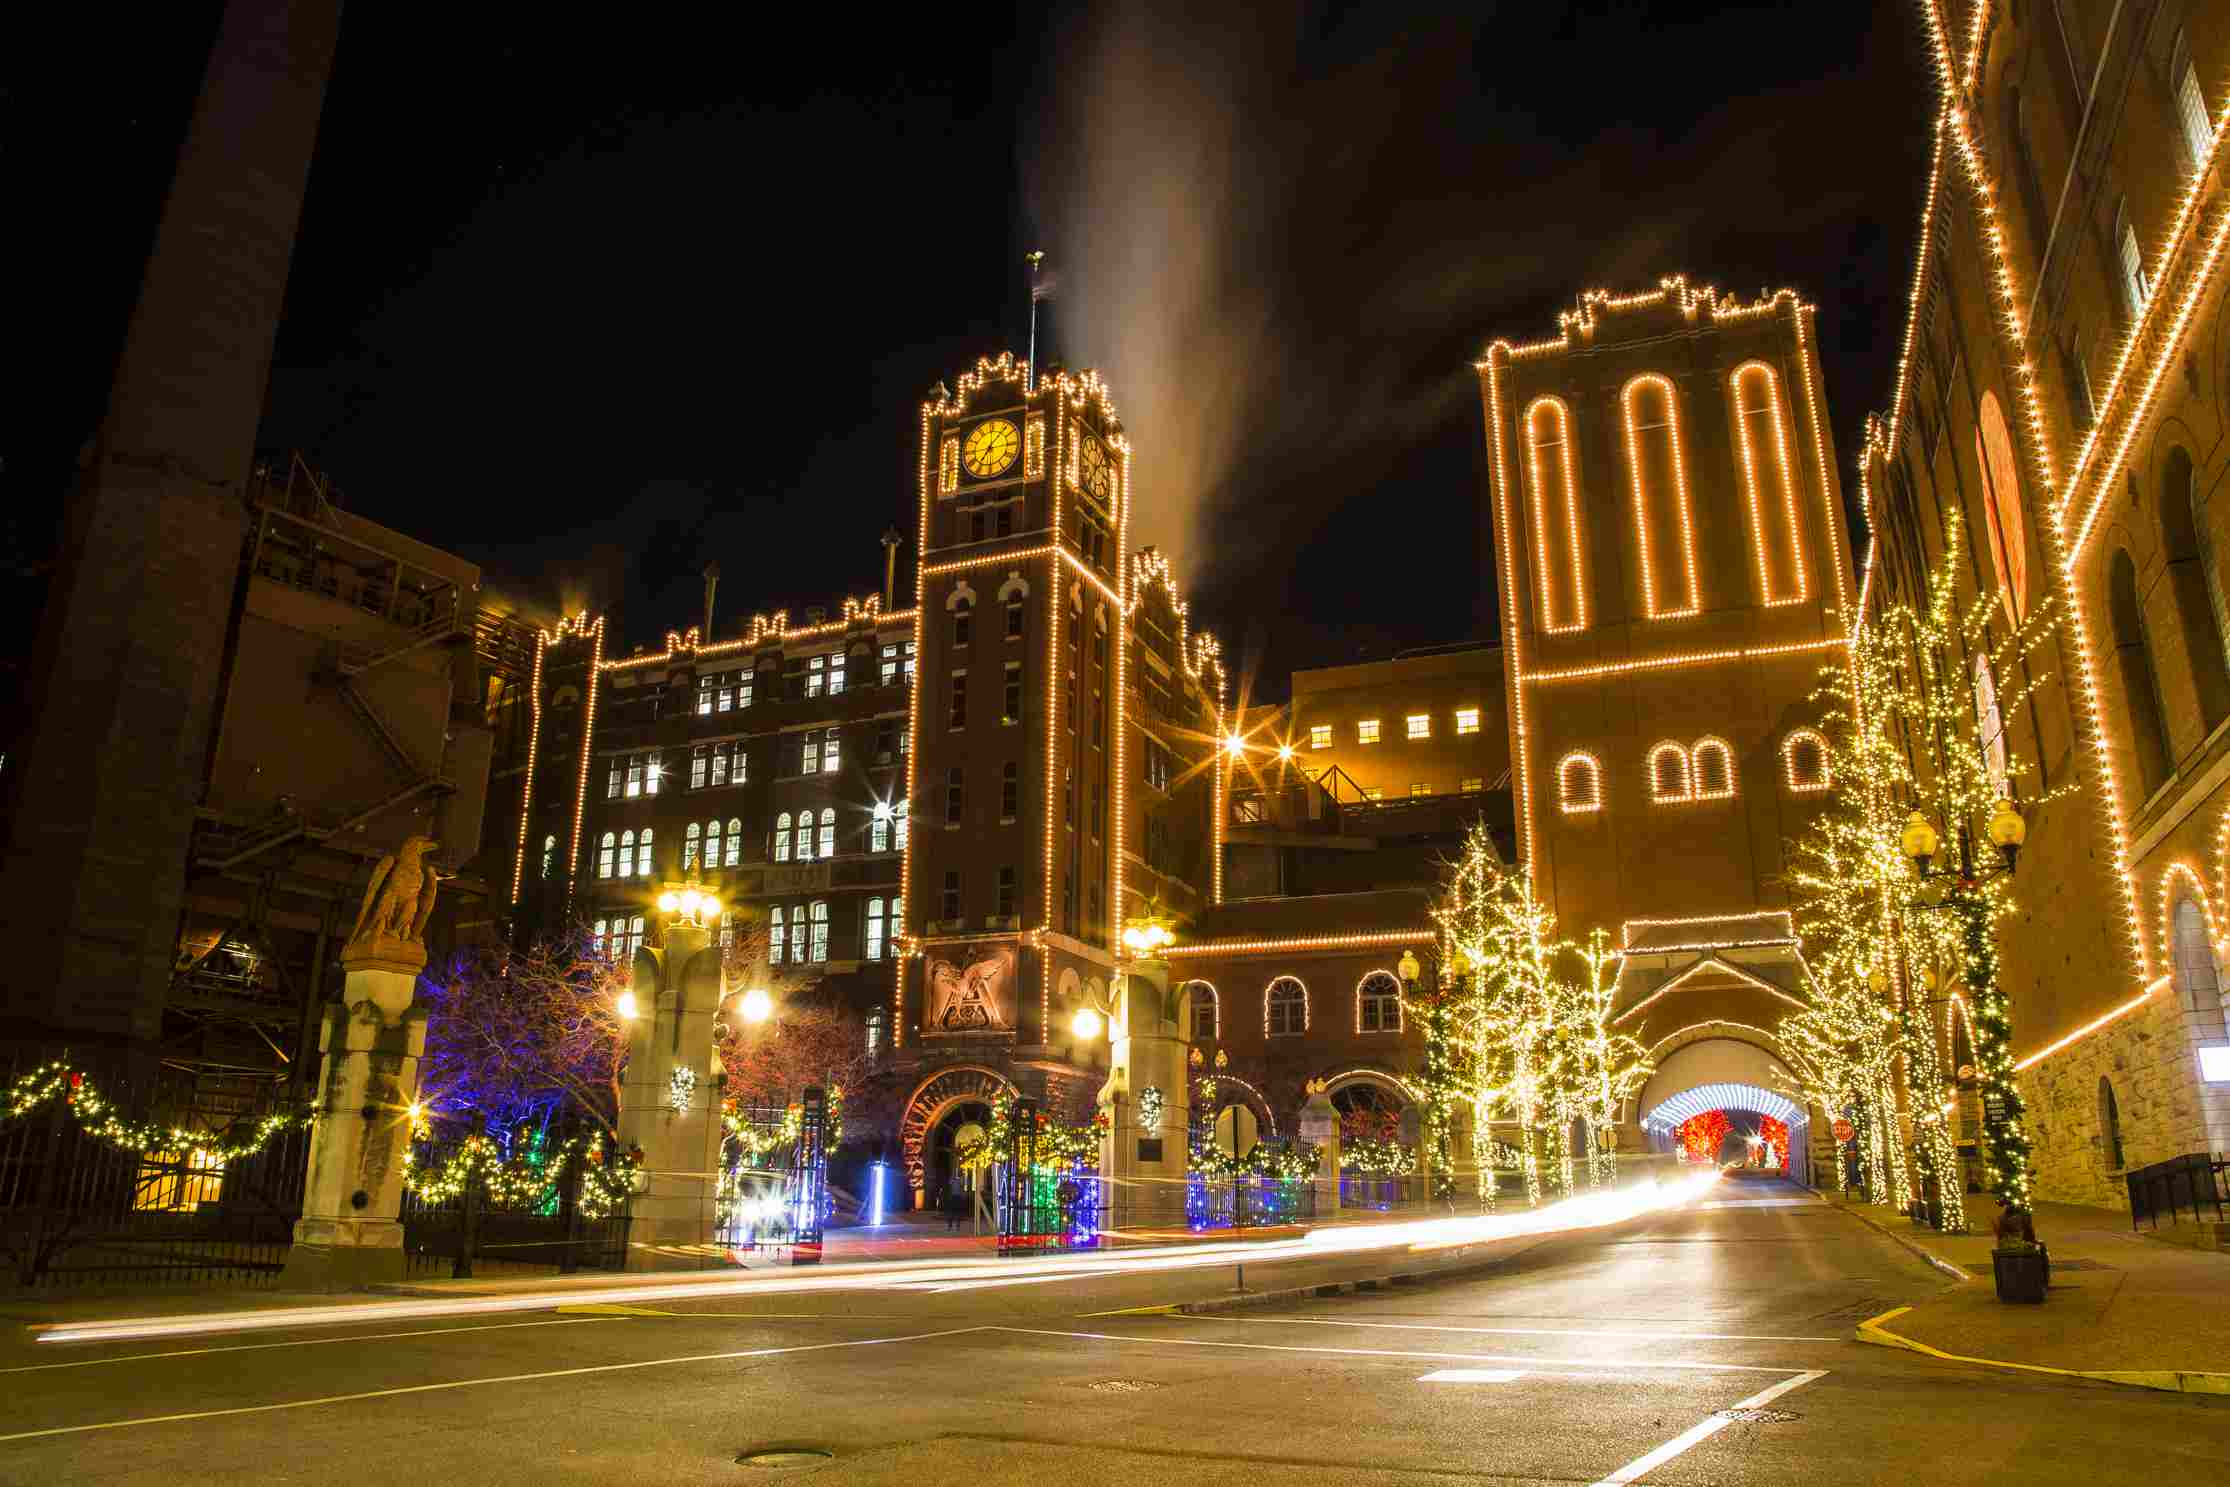 St Louis Christmas Activities 2020 Things to Do for the Holidays in St. Louis With Your Family